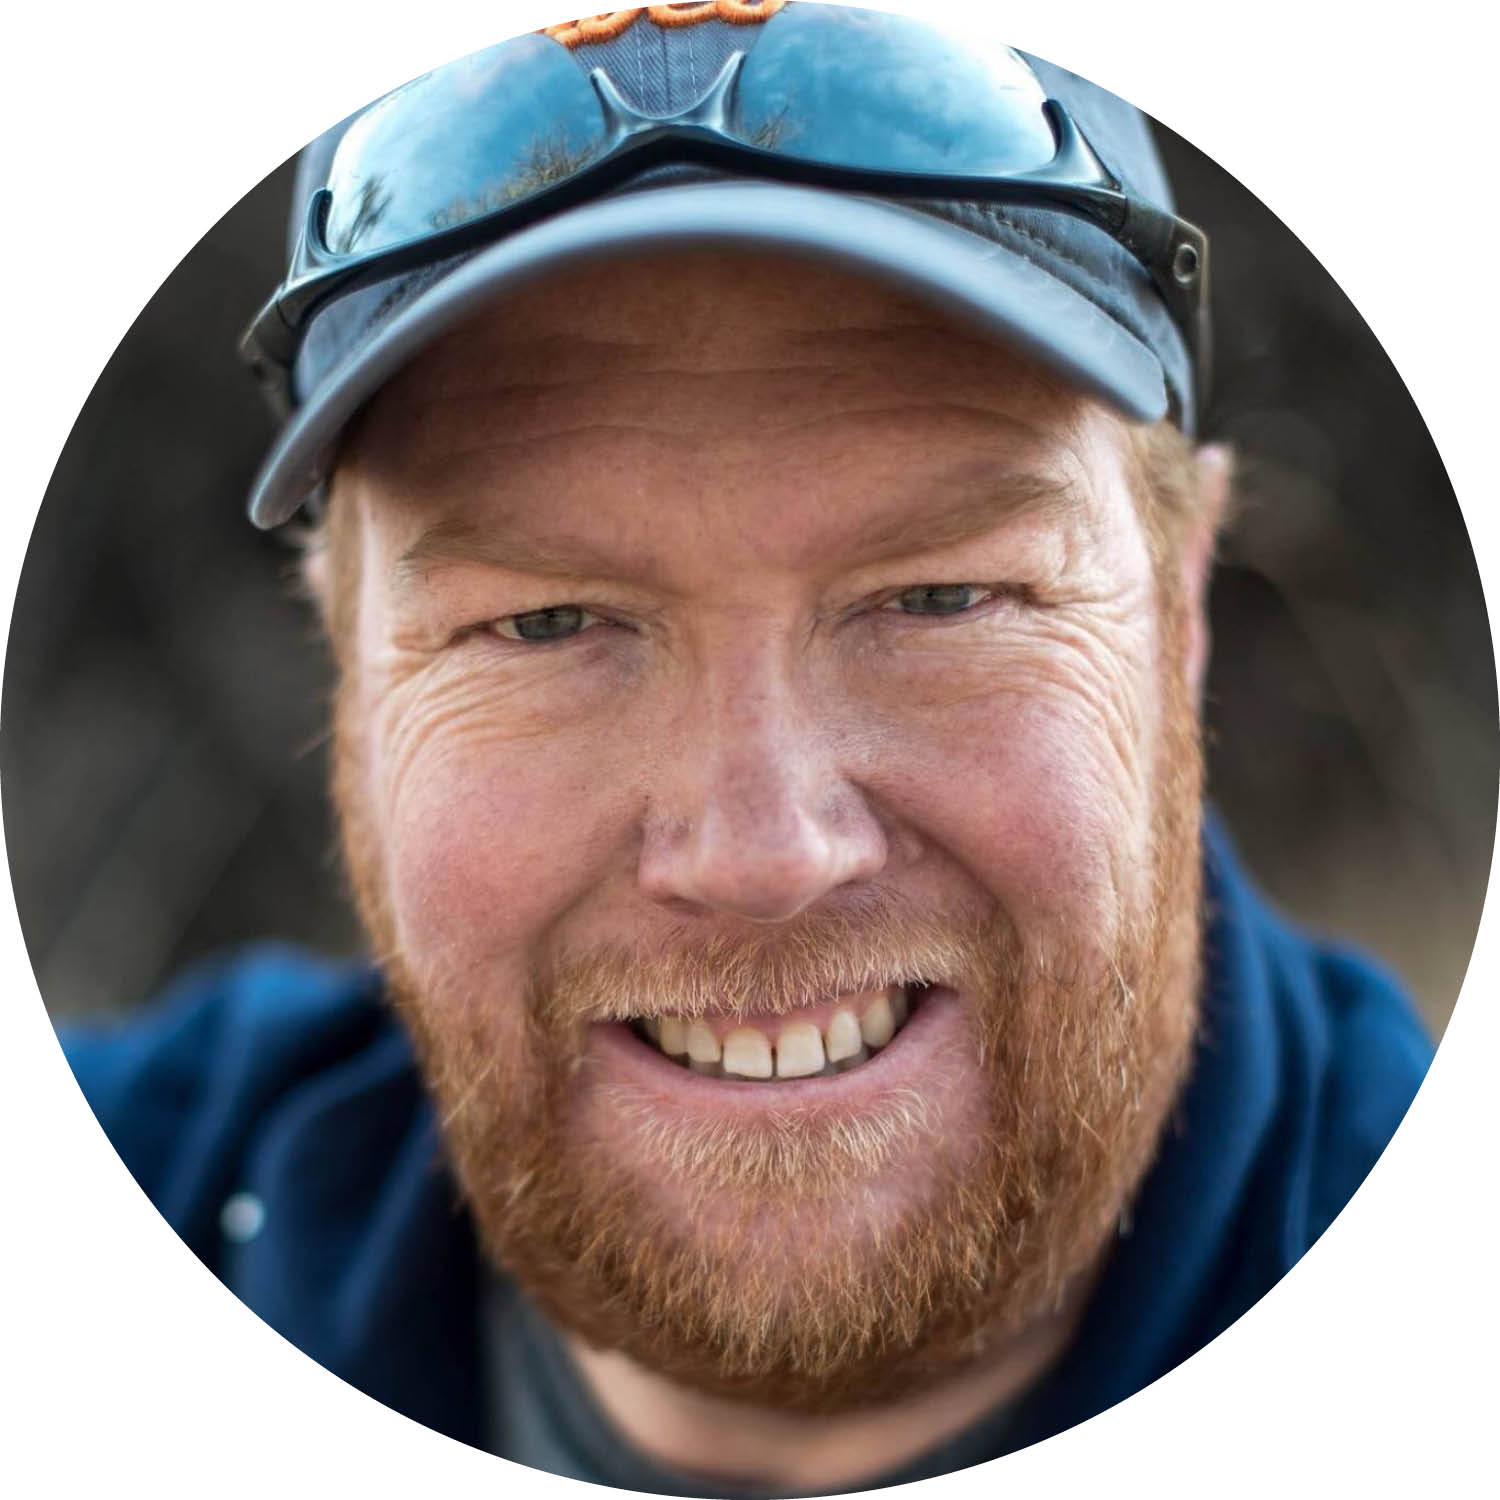 Meet Jeremy Bangs - Jeremy  is a single father of a 9-year-old daughter, Olivia. He spent more than 17 years as a writer, photographer and managing editor for community newspapers along Colorado's Front Range.